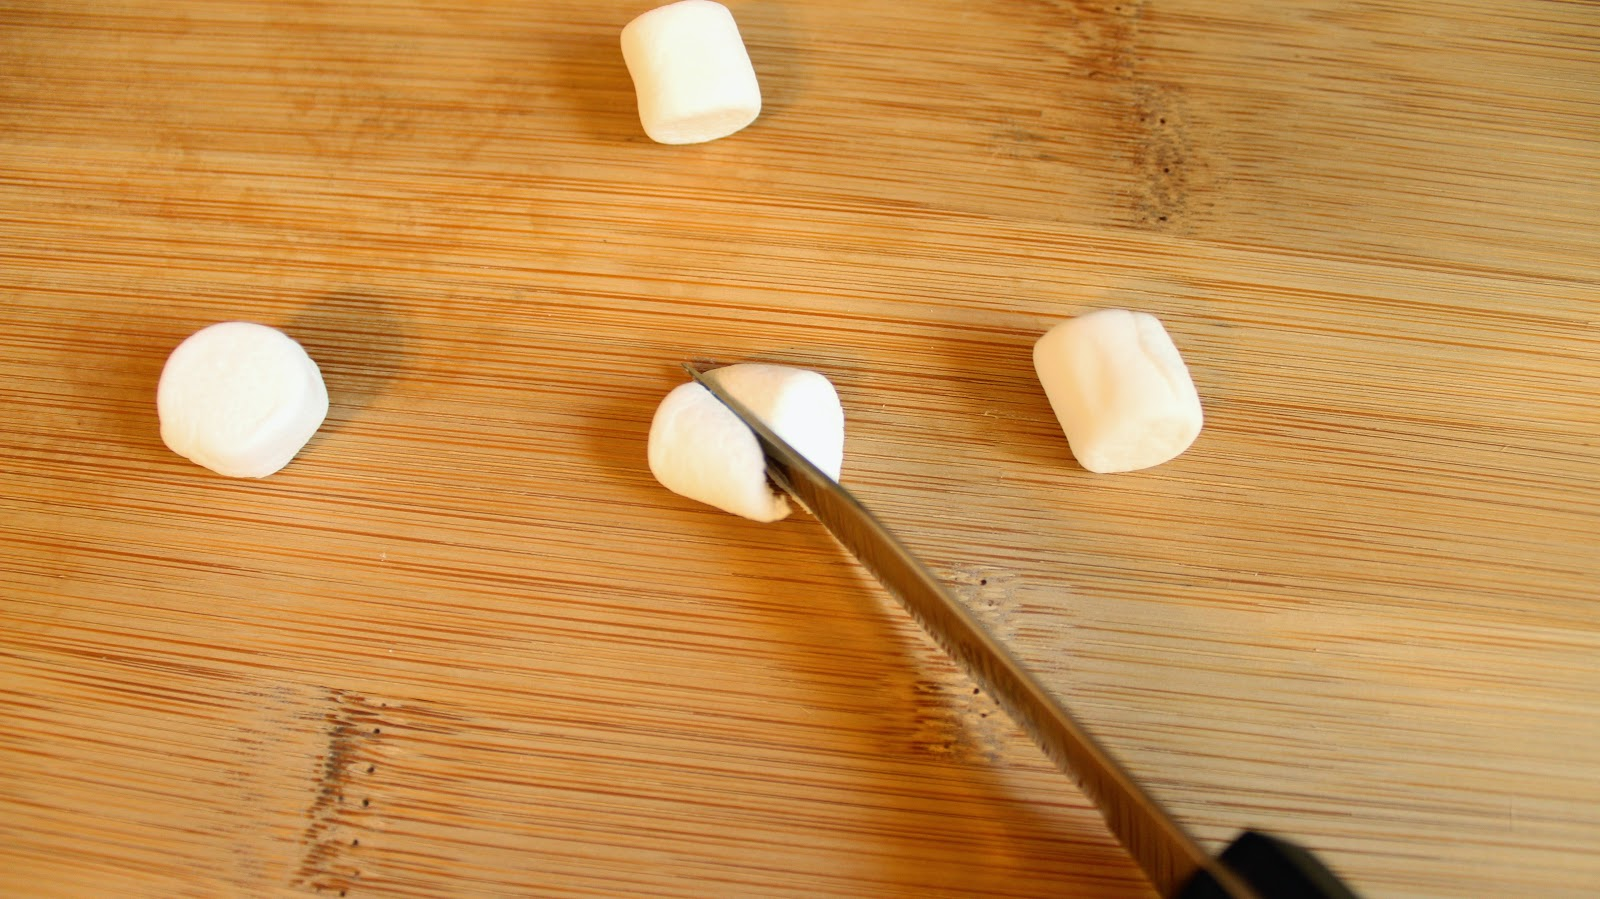 Knife cutting marshmallow